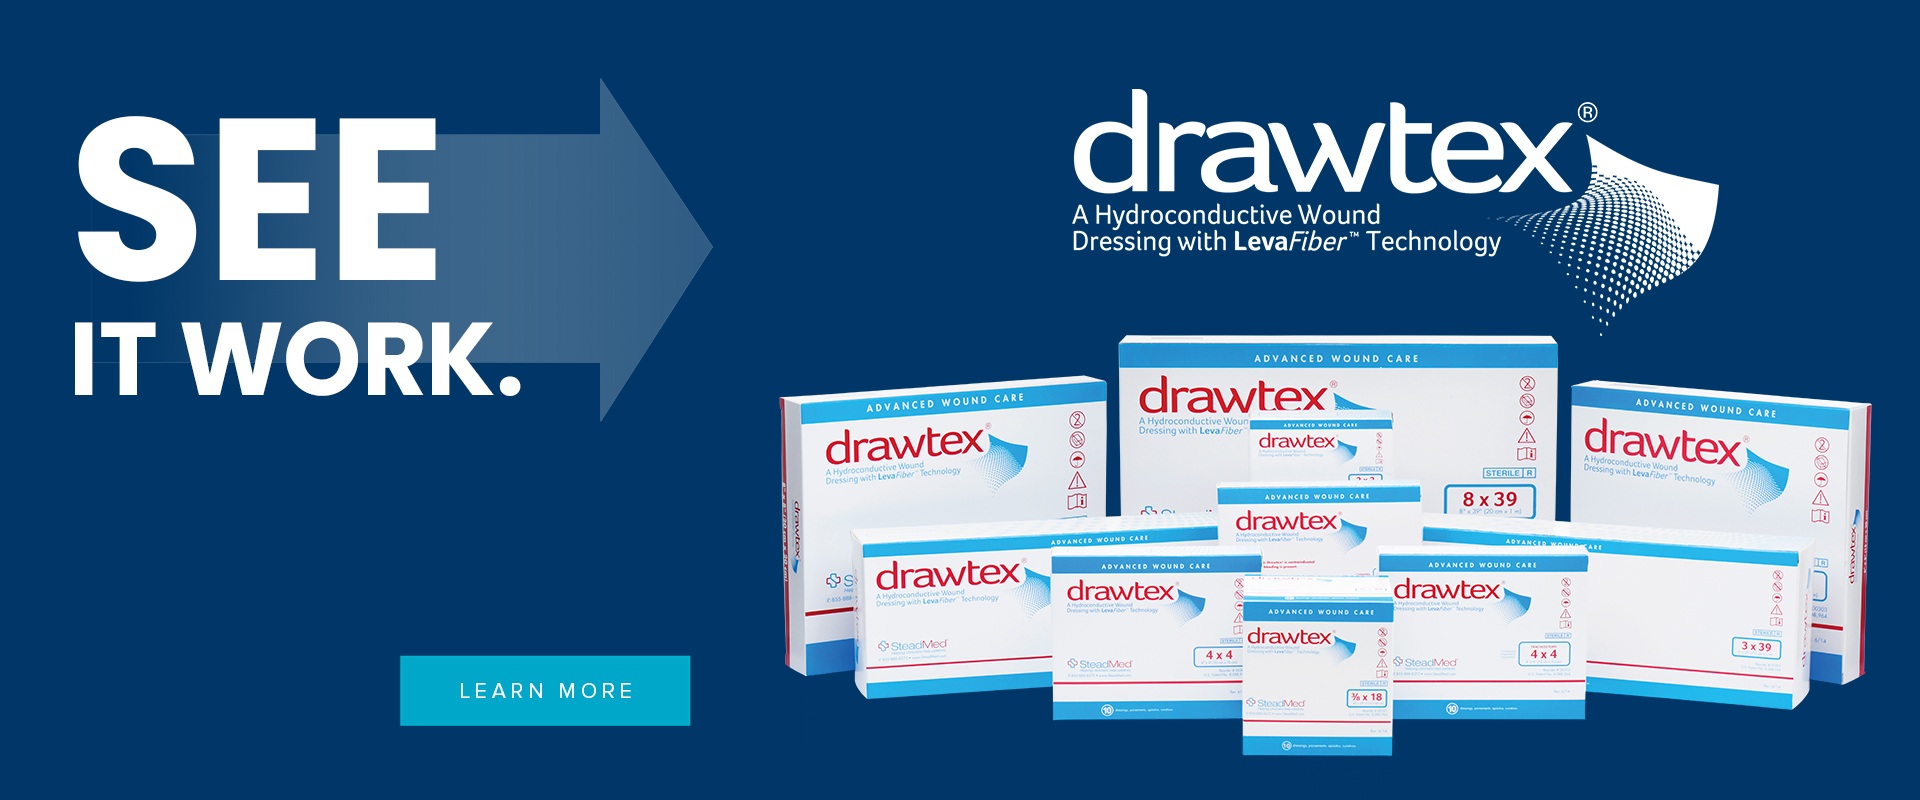 SEE IT WORK. drawtex. A Hydroconductive Wound Dressing with LevaFiber Technology. Learn More.